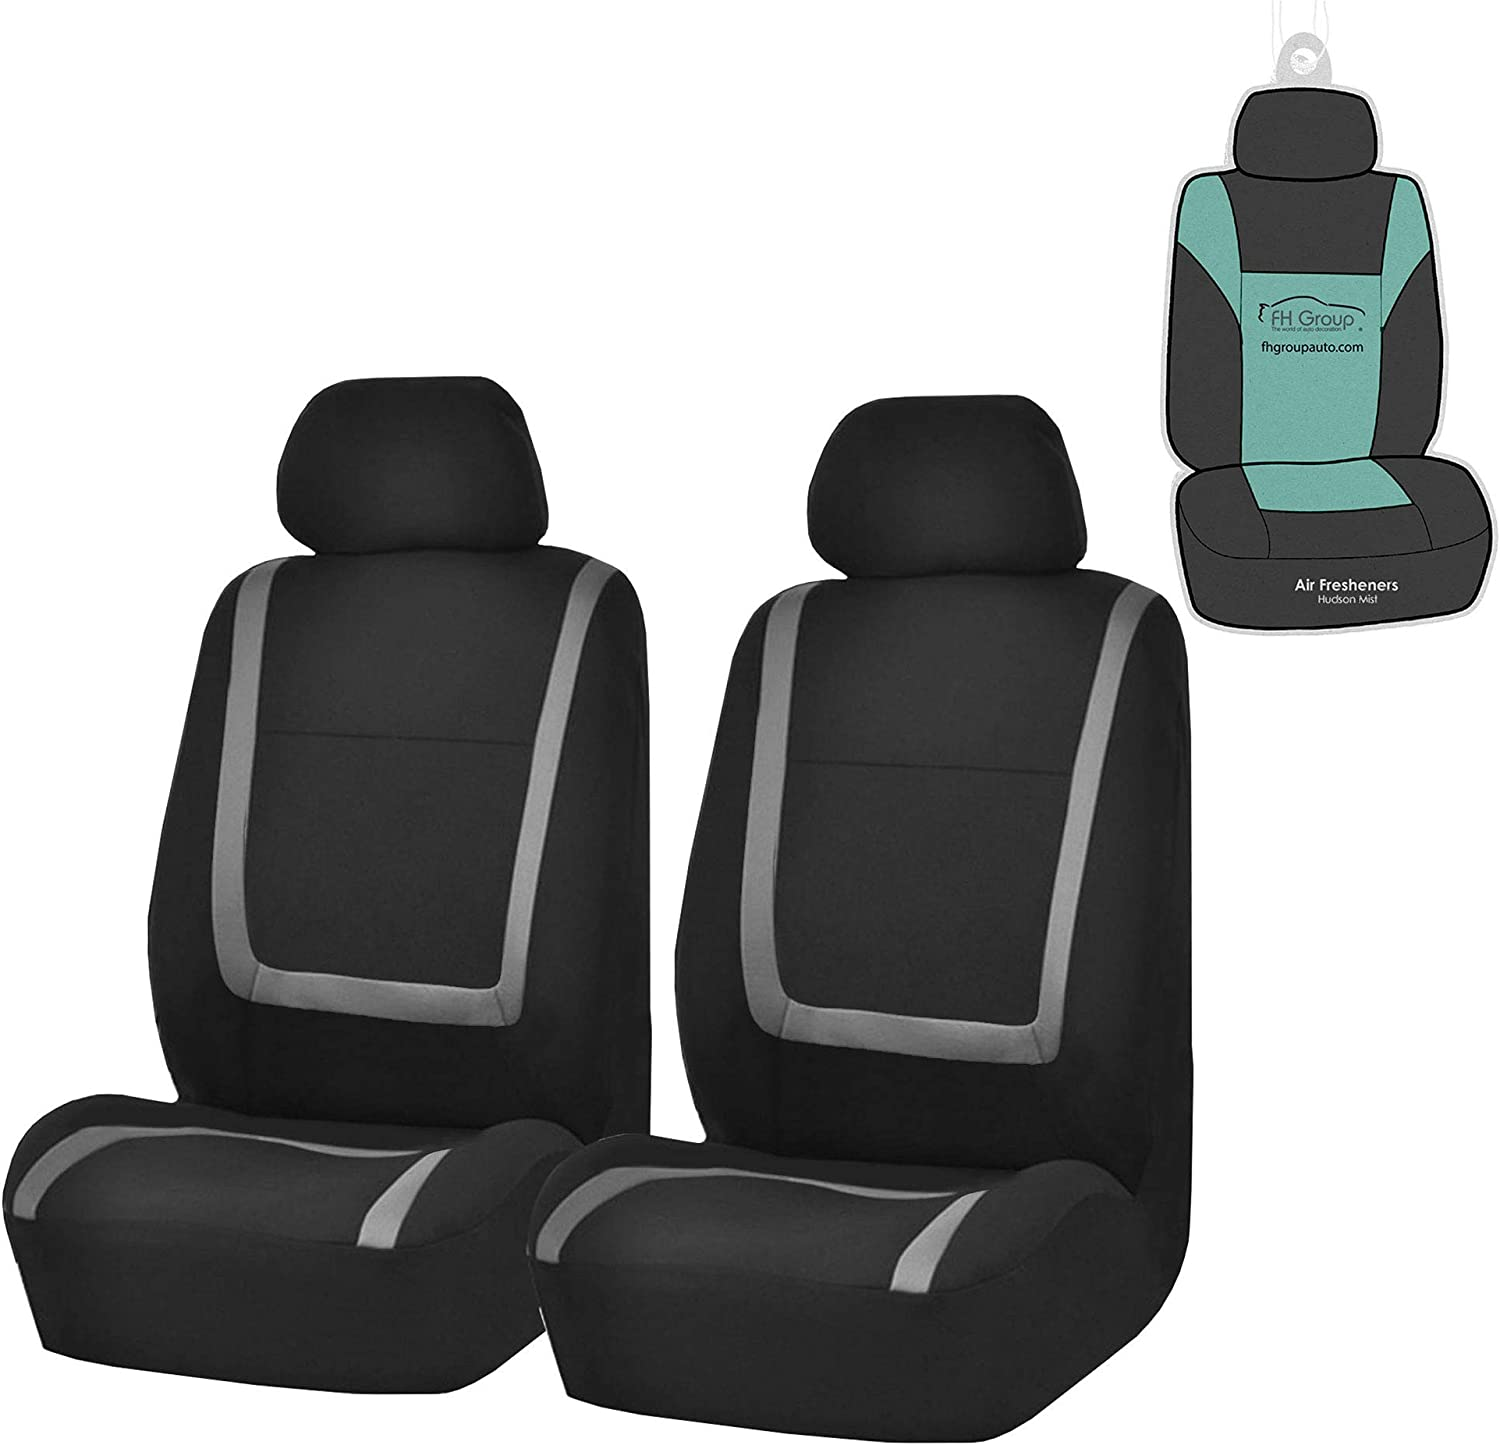 FH Group FB32102 Unique Flat Cloth Seat Covers, Gray/Black- Fit Most Car, Truck, SUV, or Van - with Gift